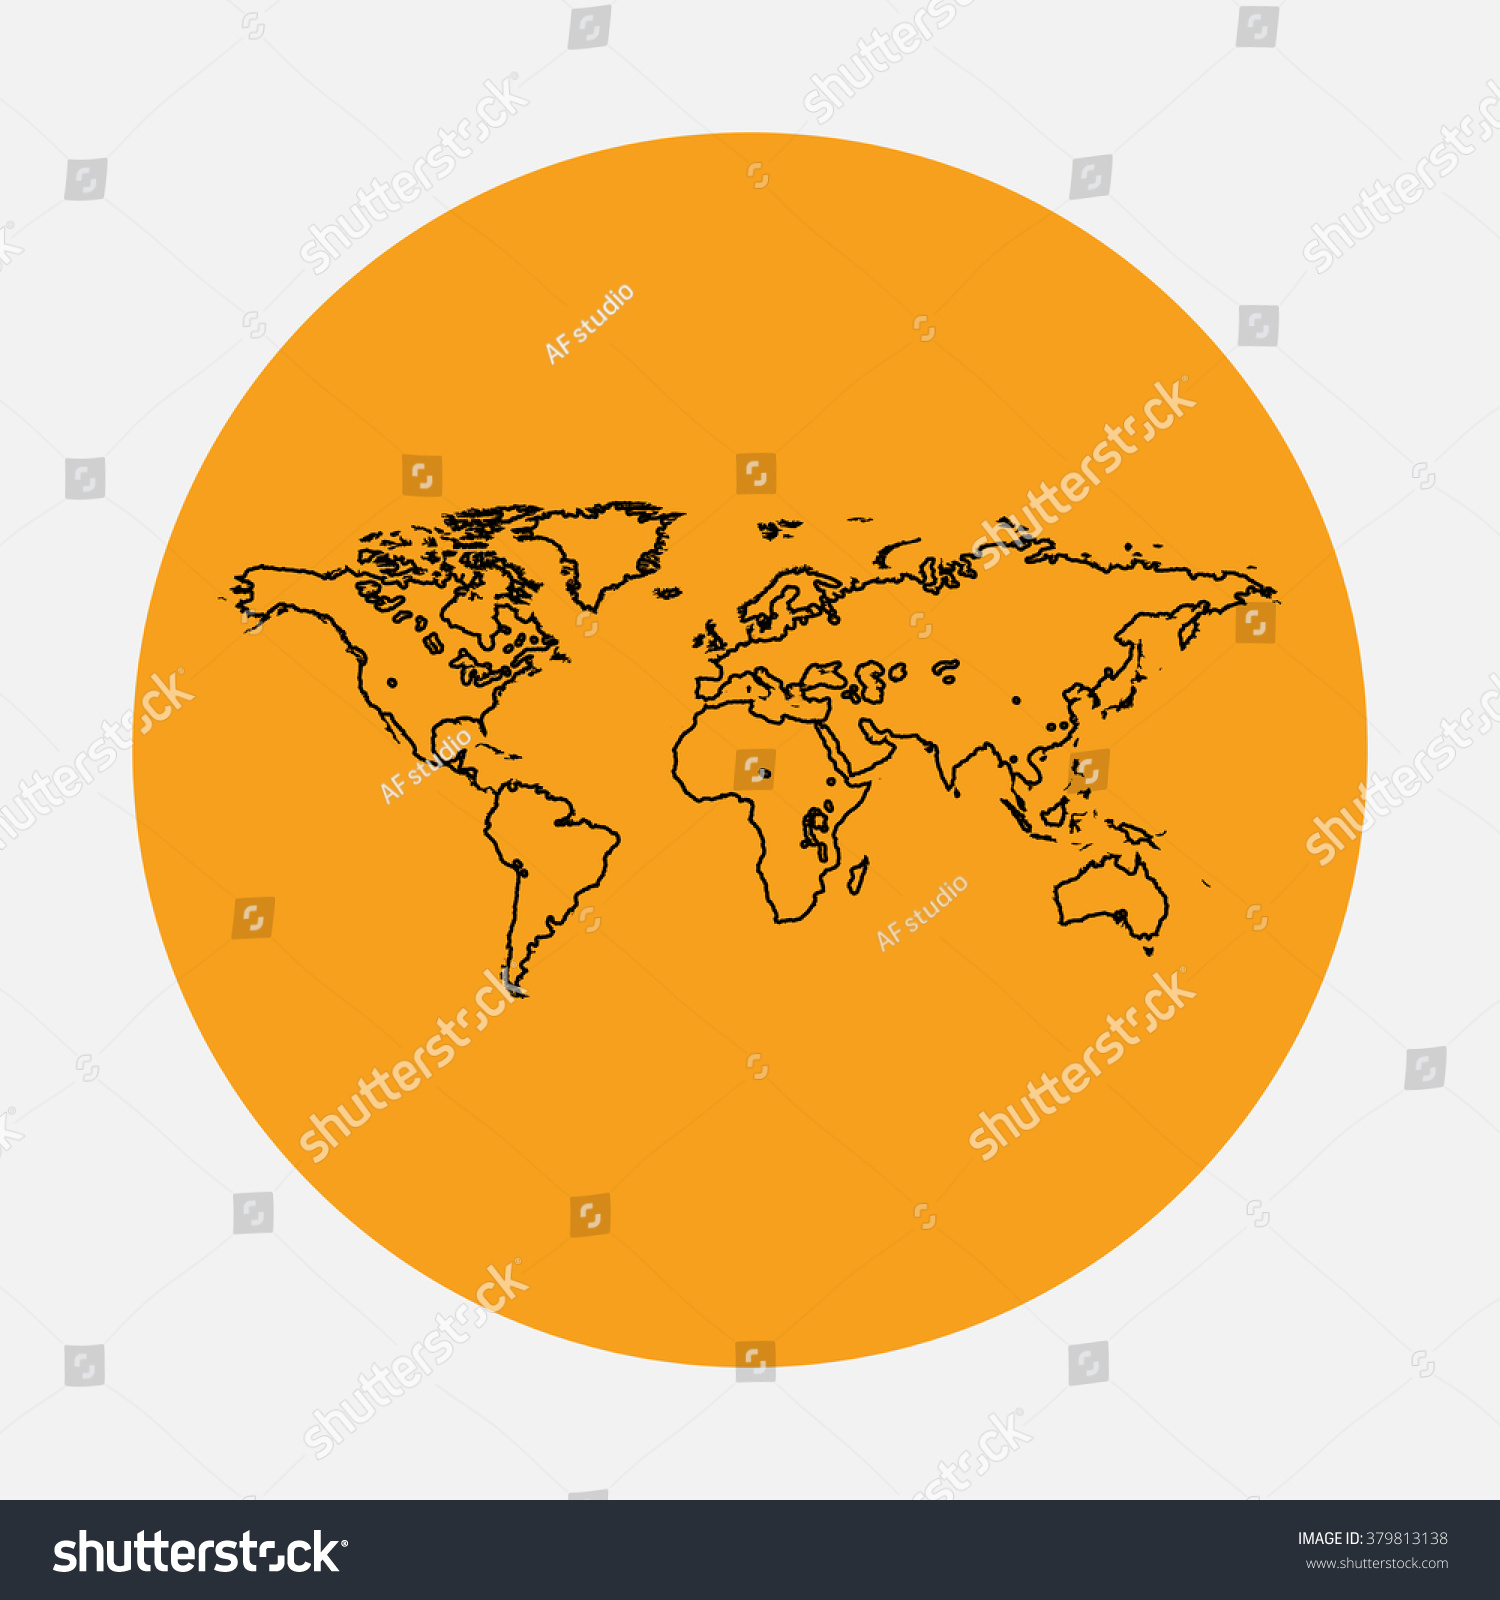 World map outline vector icon on vectores en stock 379813138 world map outline vector icon on orange circle flat line symbol pictogram gumiabroncs Gallery